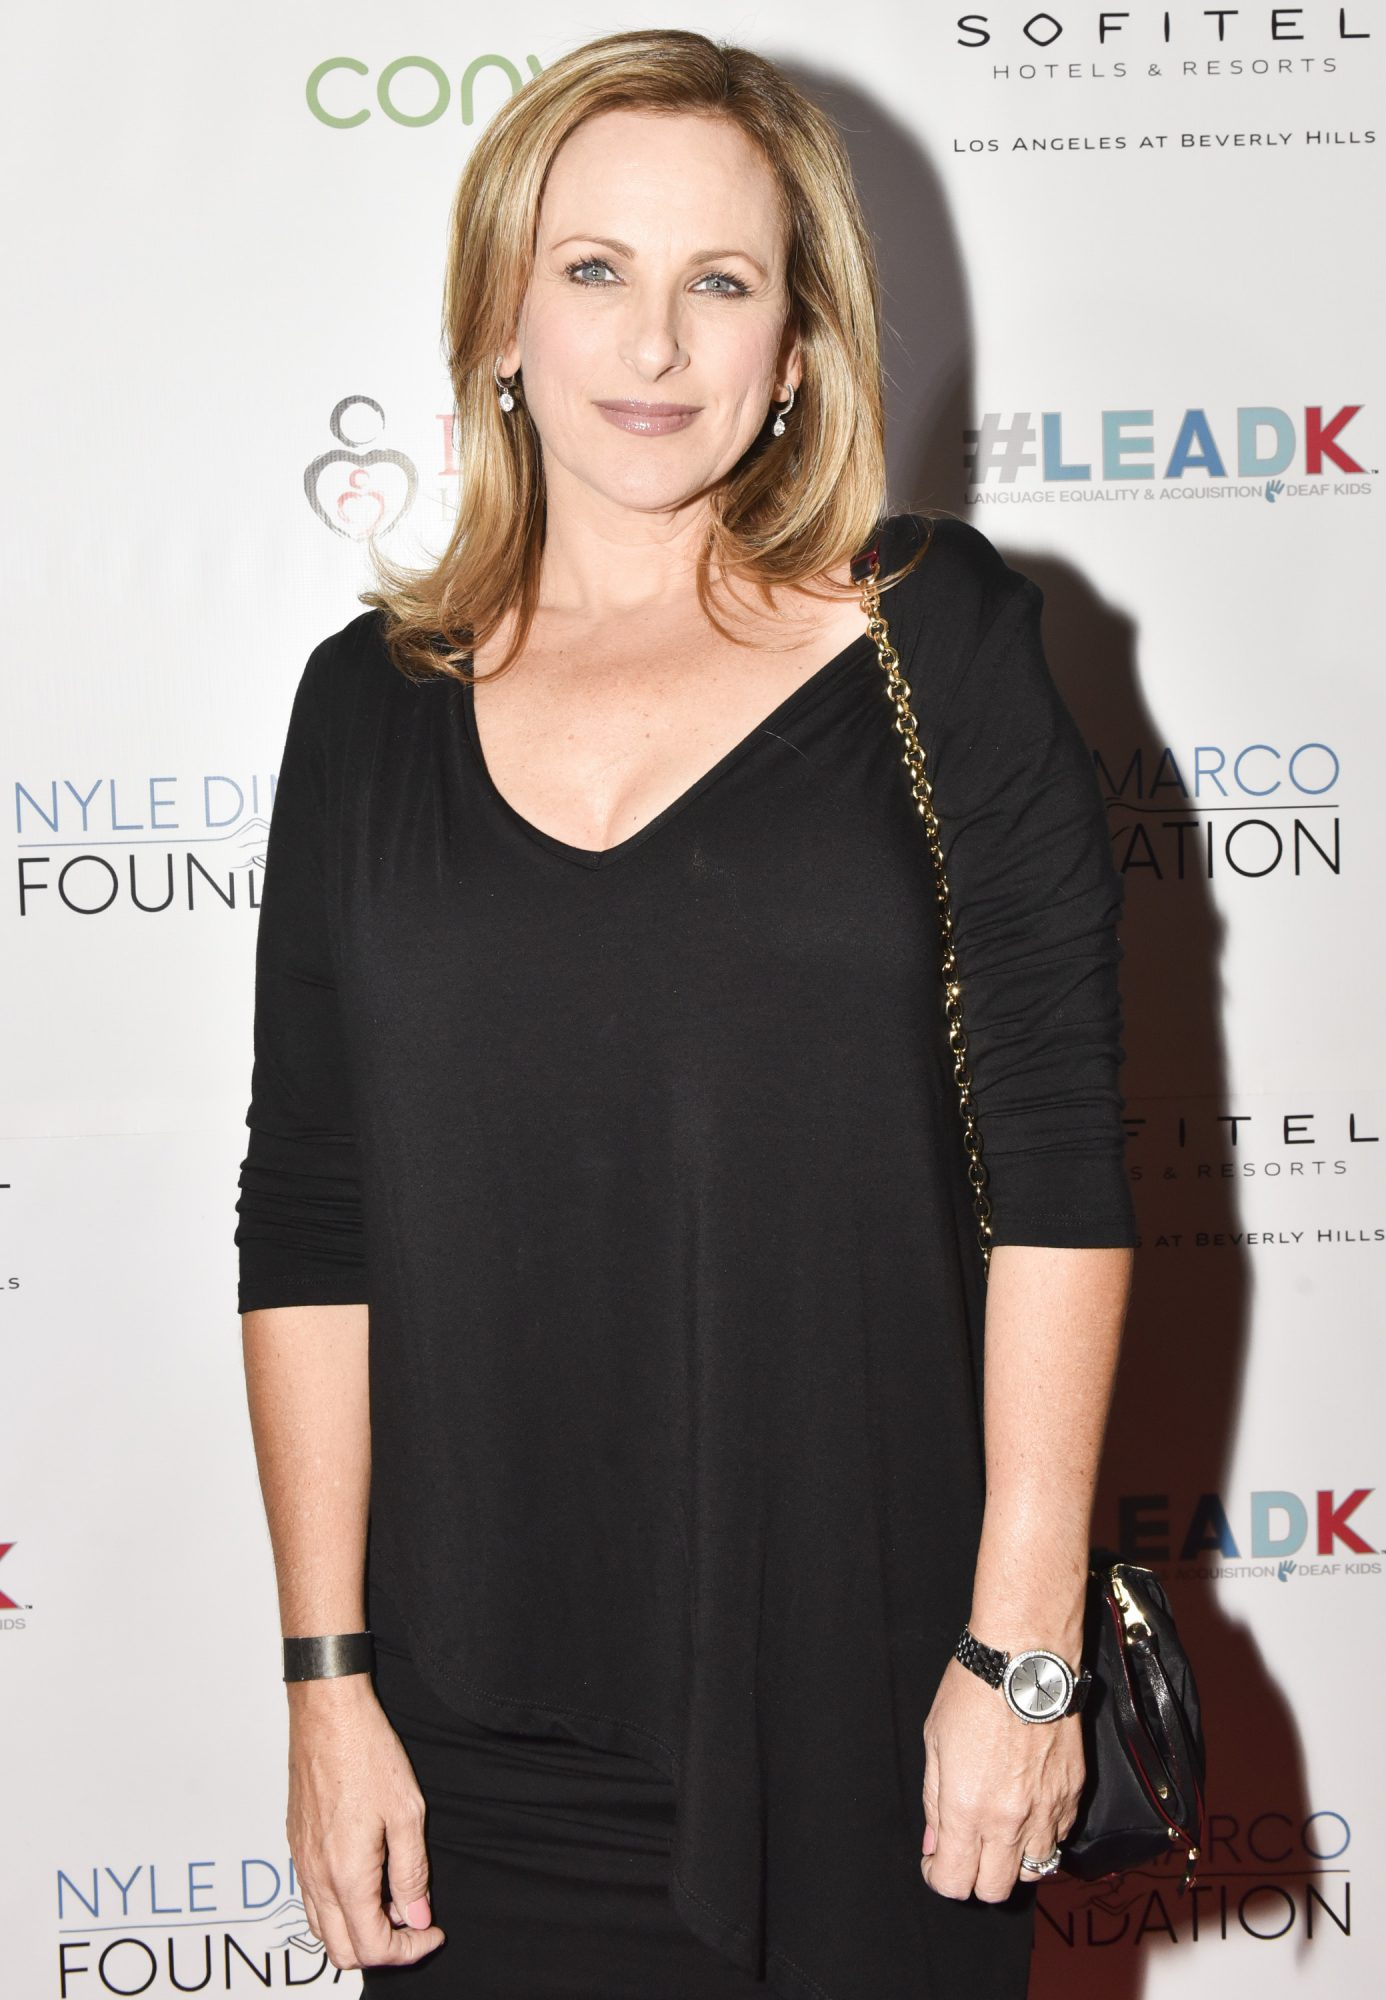 13-marlee-matlin-celebrity-addiction